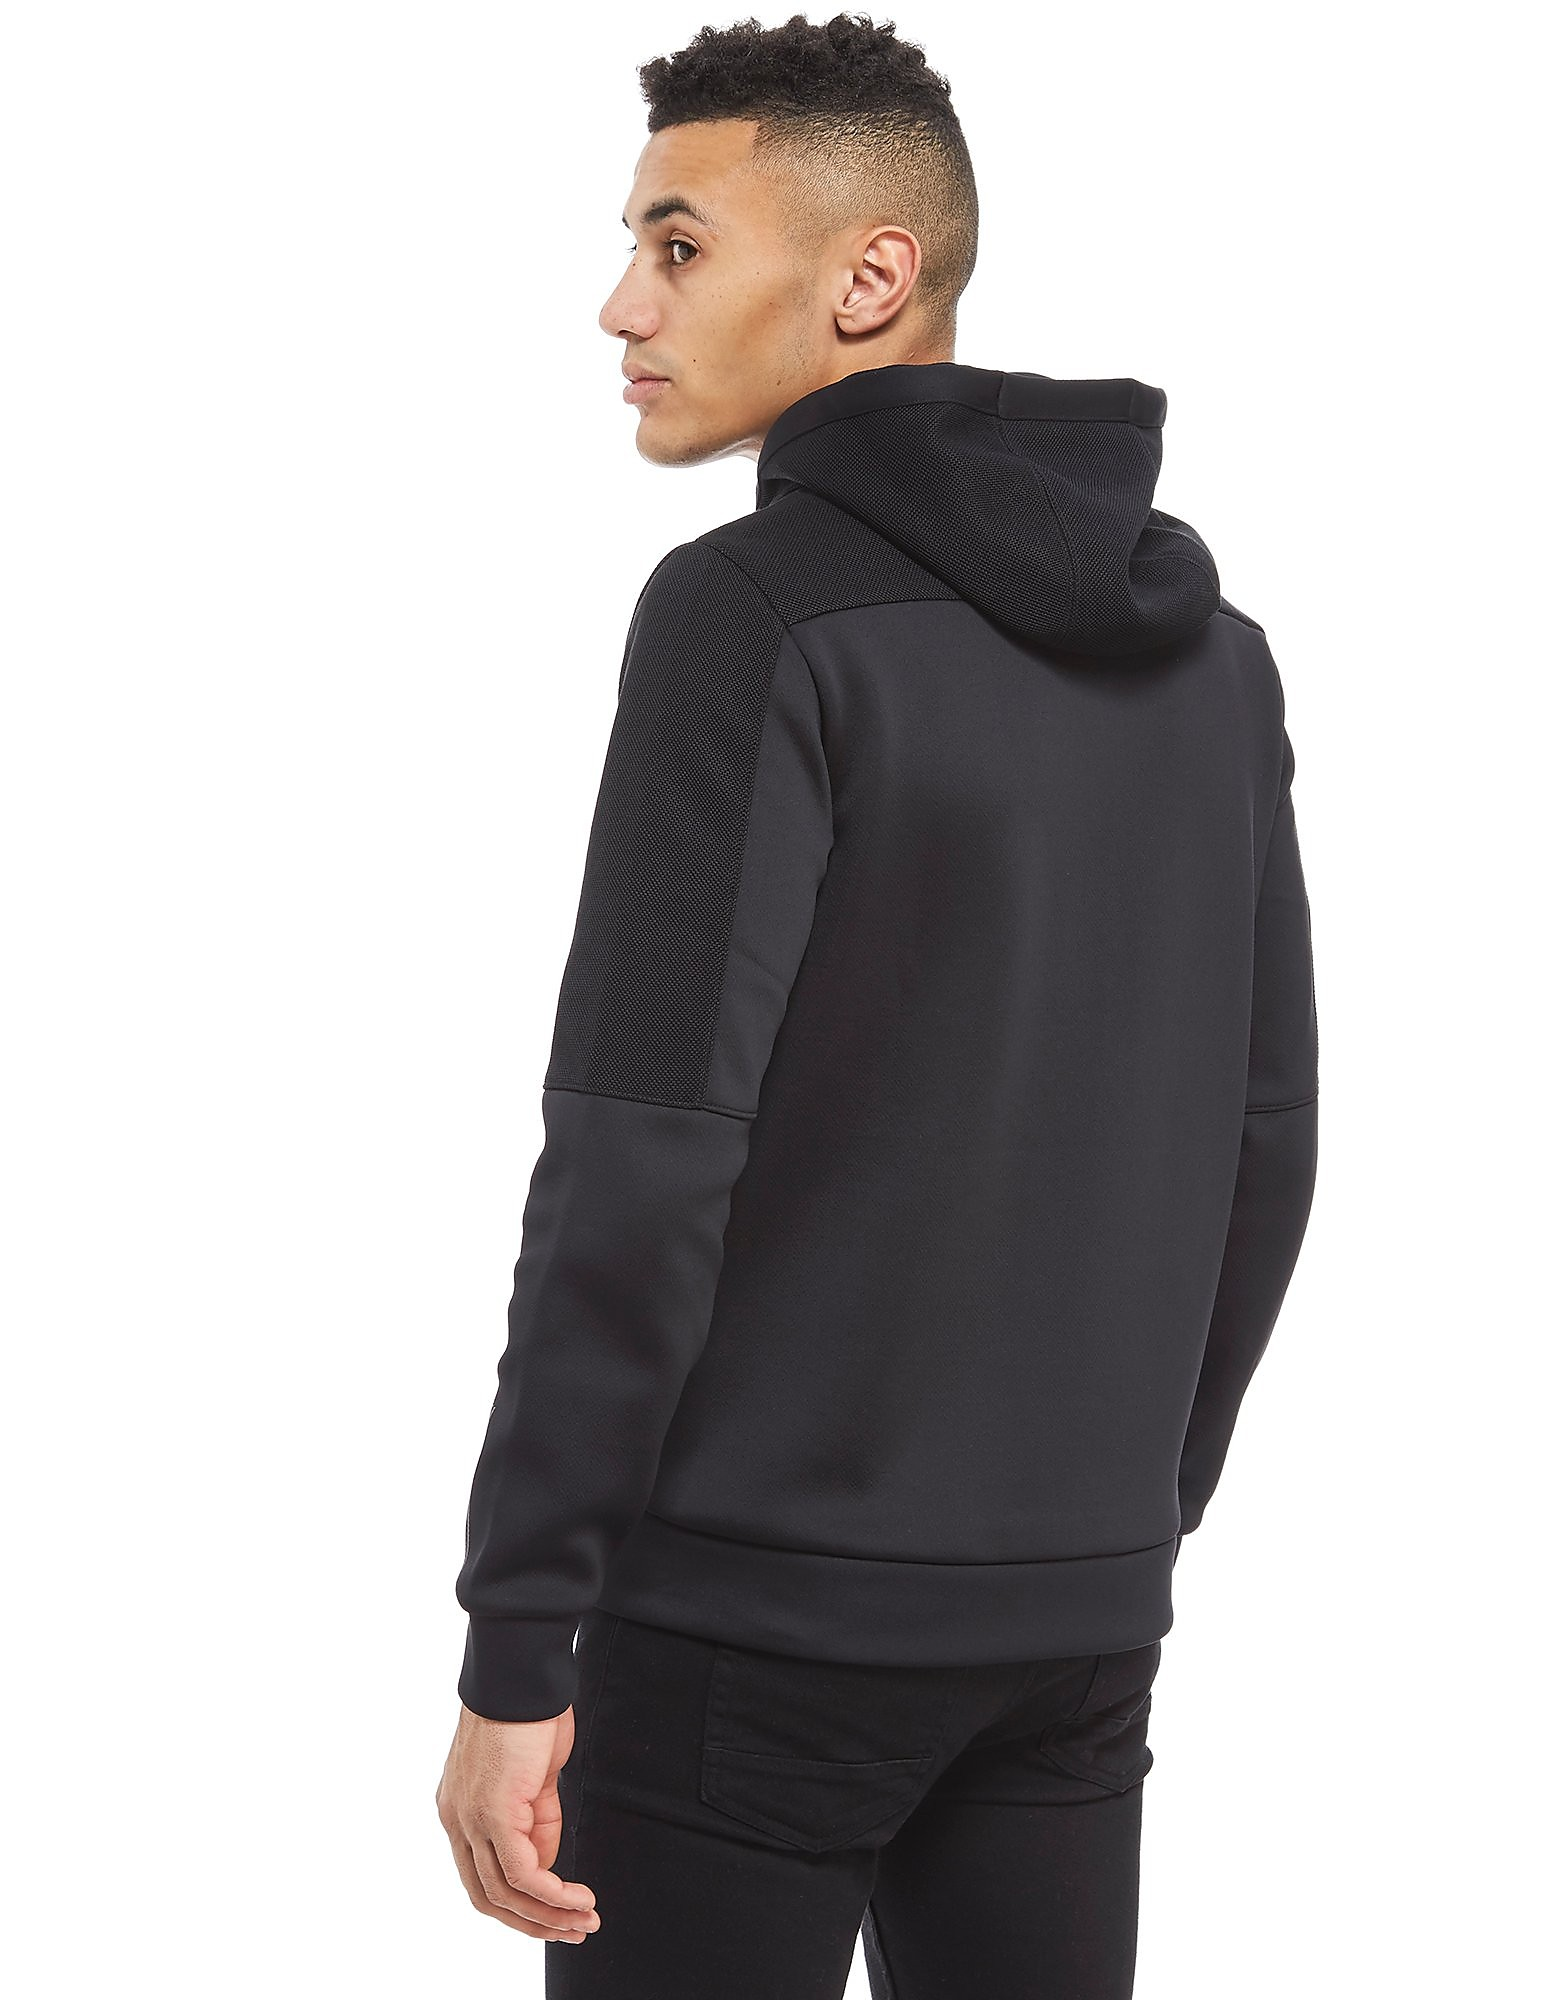 Emporio Armani EA7 Evolution+ Zip Through Hoodie